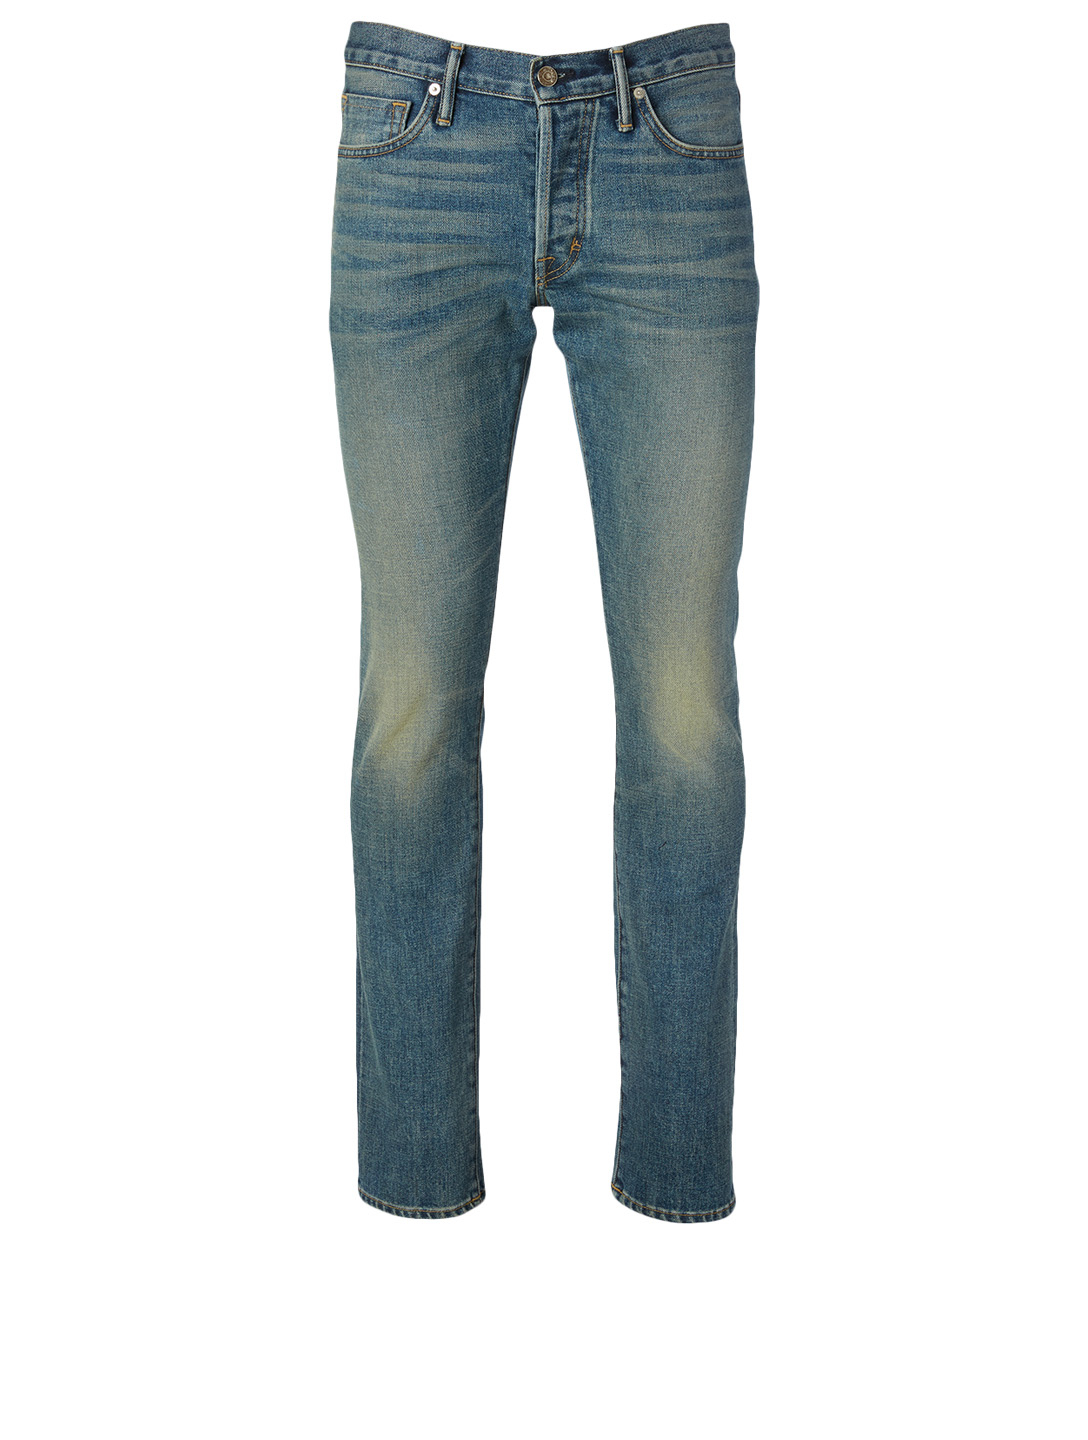 TOM FORD Cotton Stretch Slim-Fit Jeans Men's Blue